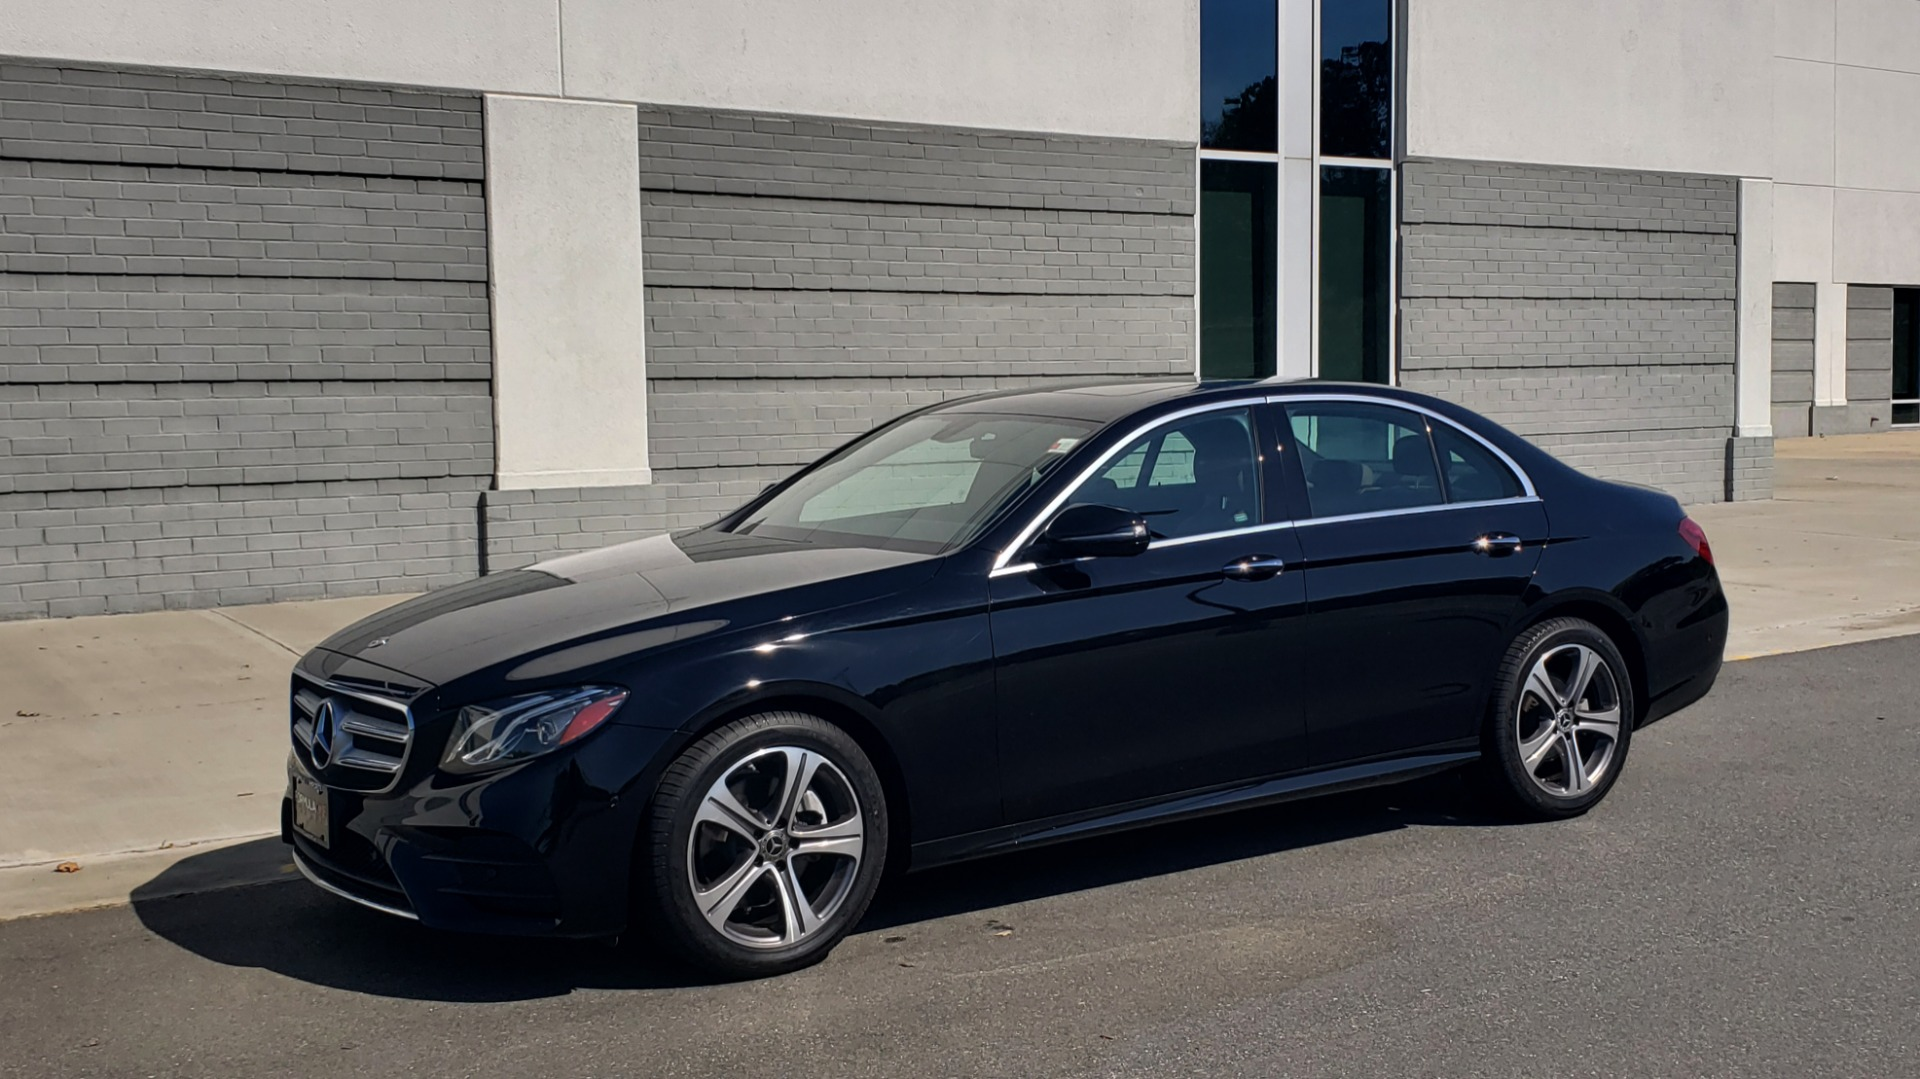 Used 2018 Mercedes-Benz E-CLASS E 300 4MATIC PREMIUM / NAV / BURMESTER SND / BSM / REARVIEW for sale $33,995 at Formula Imports in Charlotte NC 28227 4